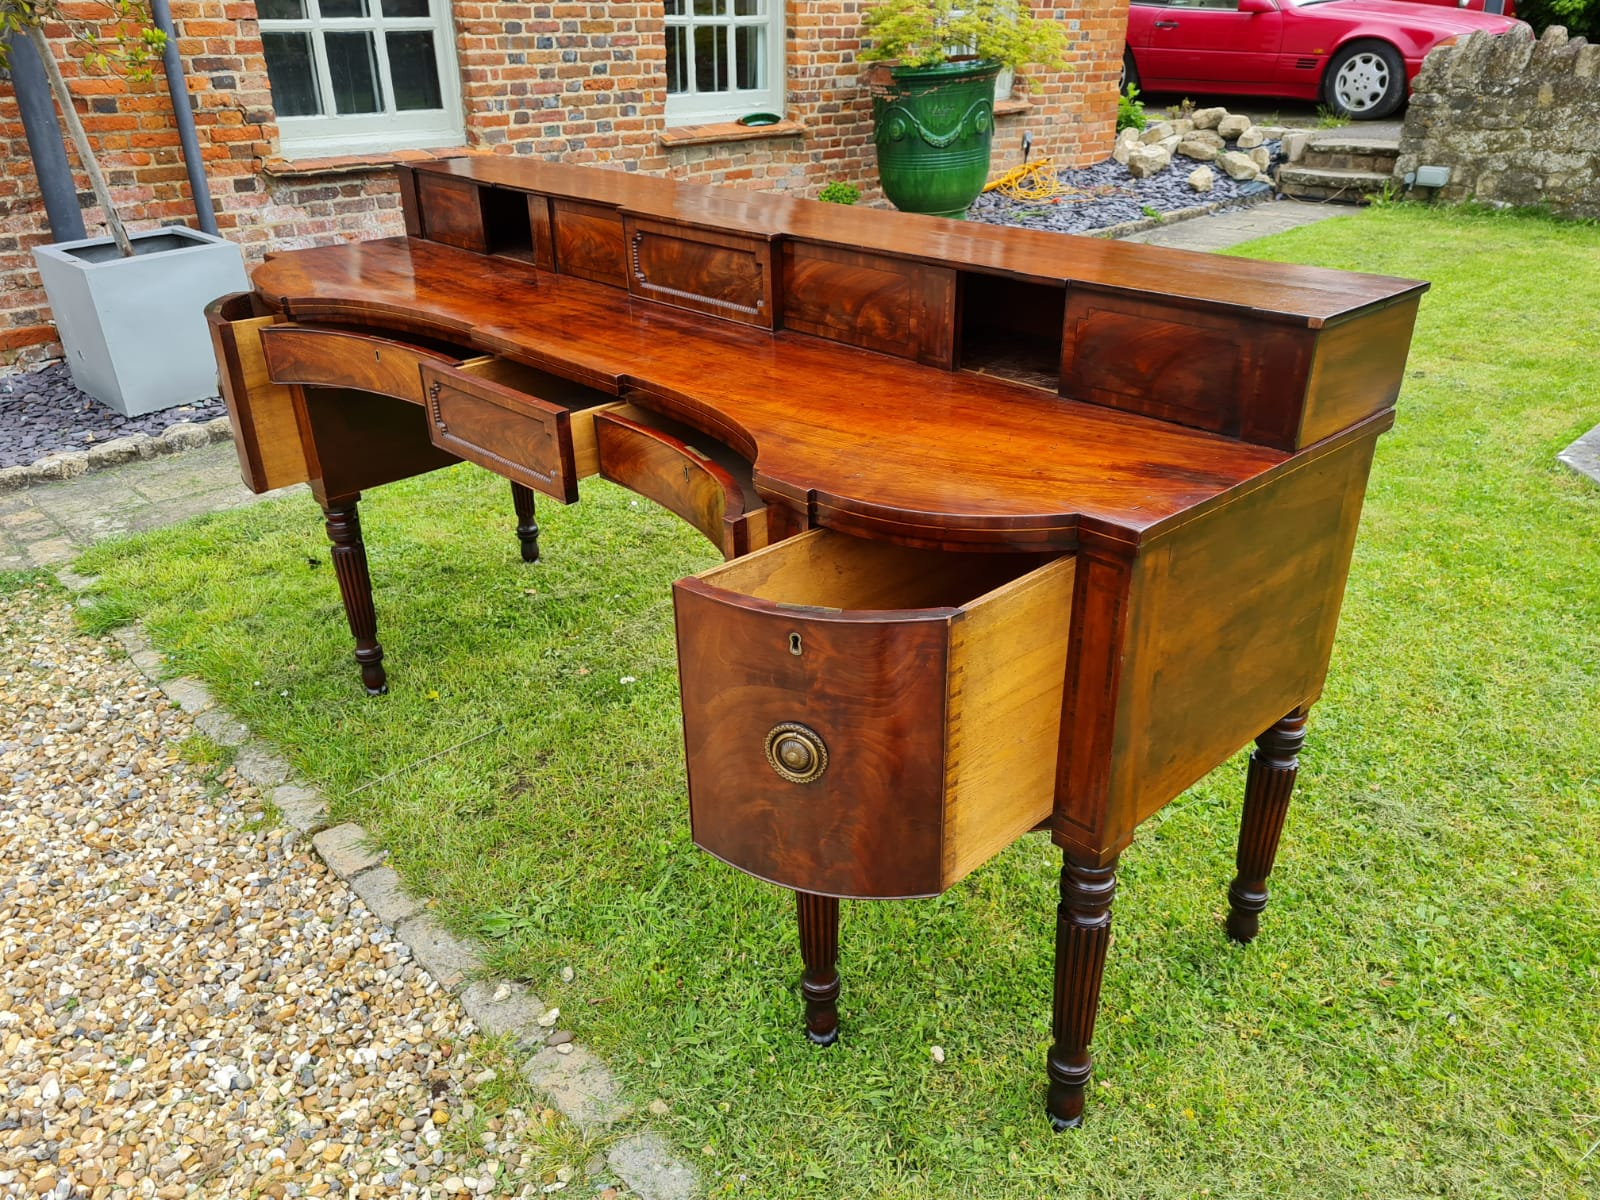 A LARGE 18TH CENTURY MAHOGANY SIDEBOARD With a stepped gallery shelf above two inverted drawers - Image 4 of 7